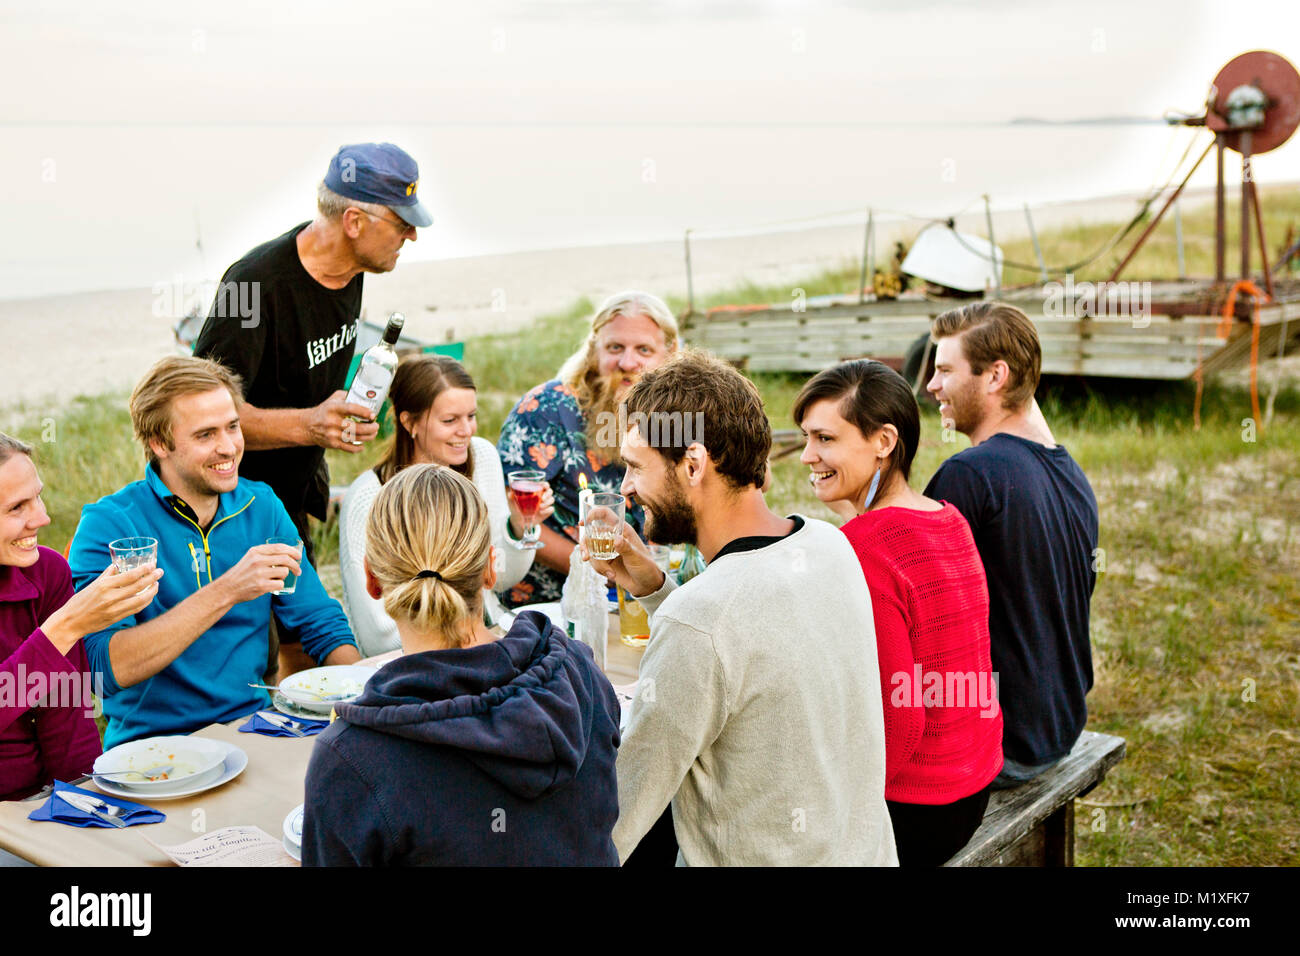 Family eating together in Friseboda, Sweden - Stock Image